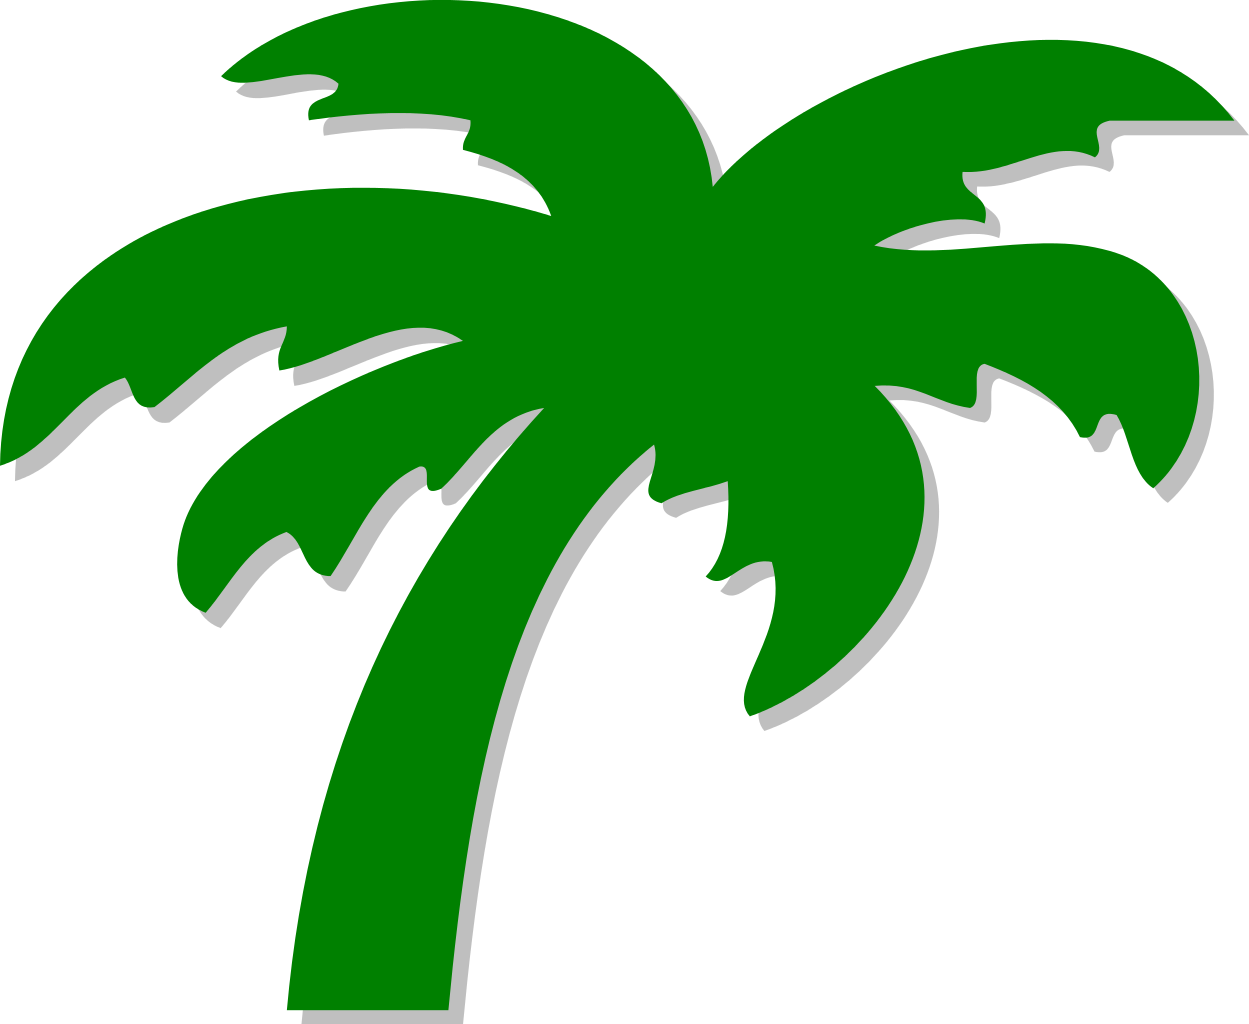 Silhouette Of Palm Trees at GetDrawings.com | Free for personal use ...